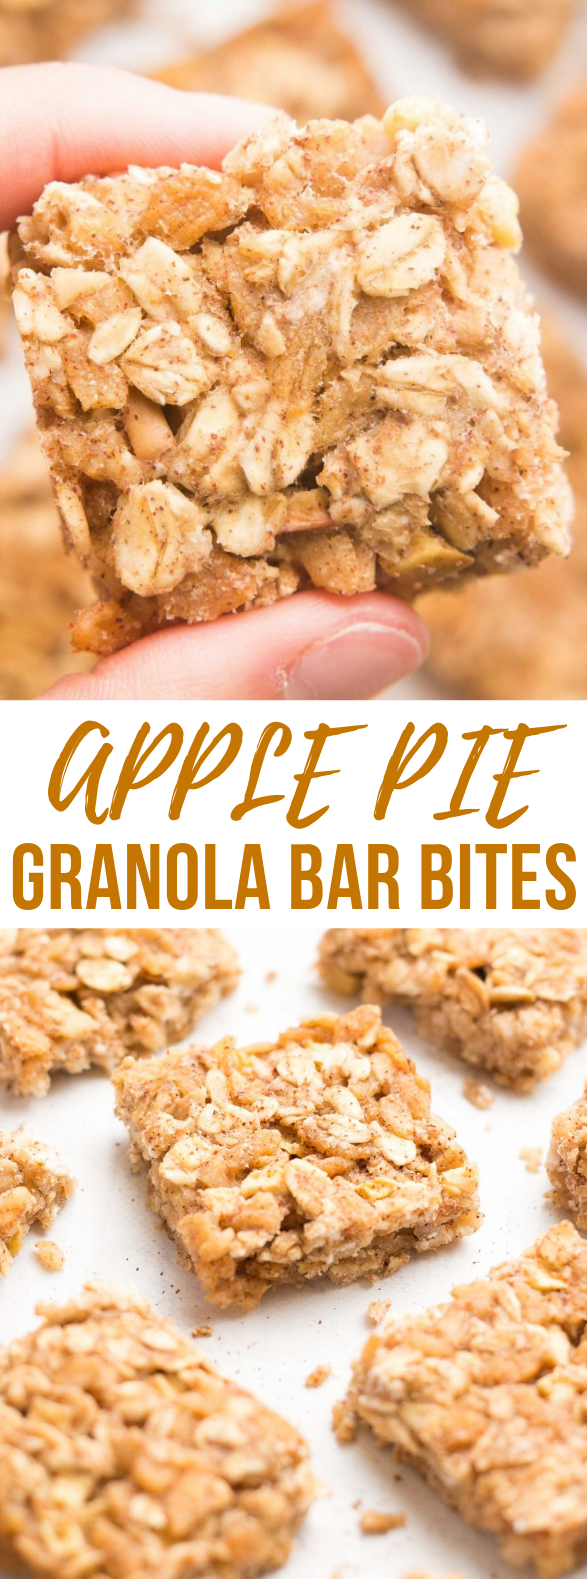 Healthy Apple Pie Granola Bar Bites #healthy #diet